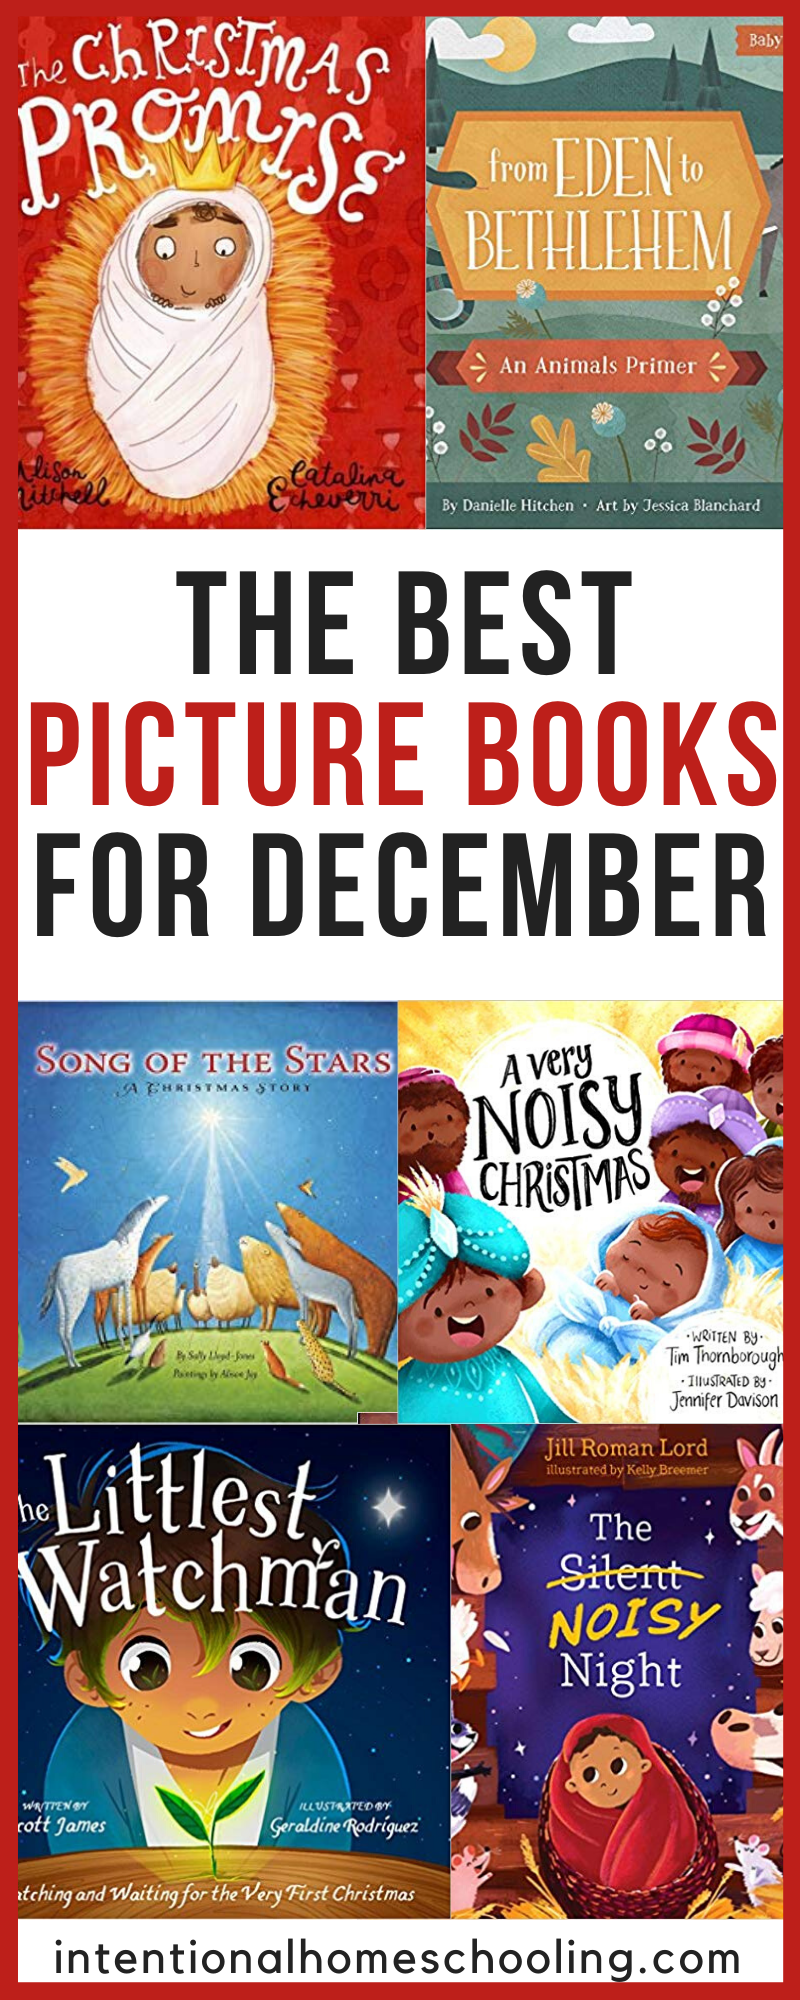 The Best Children's Books for December